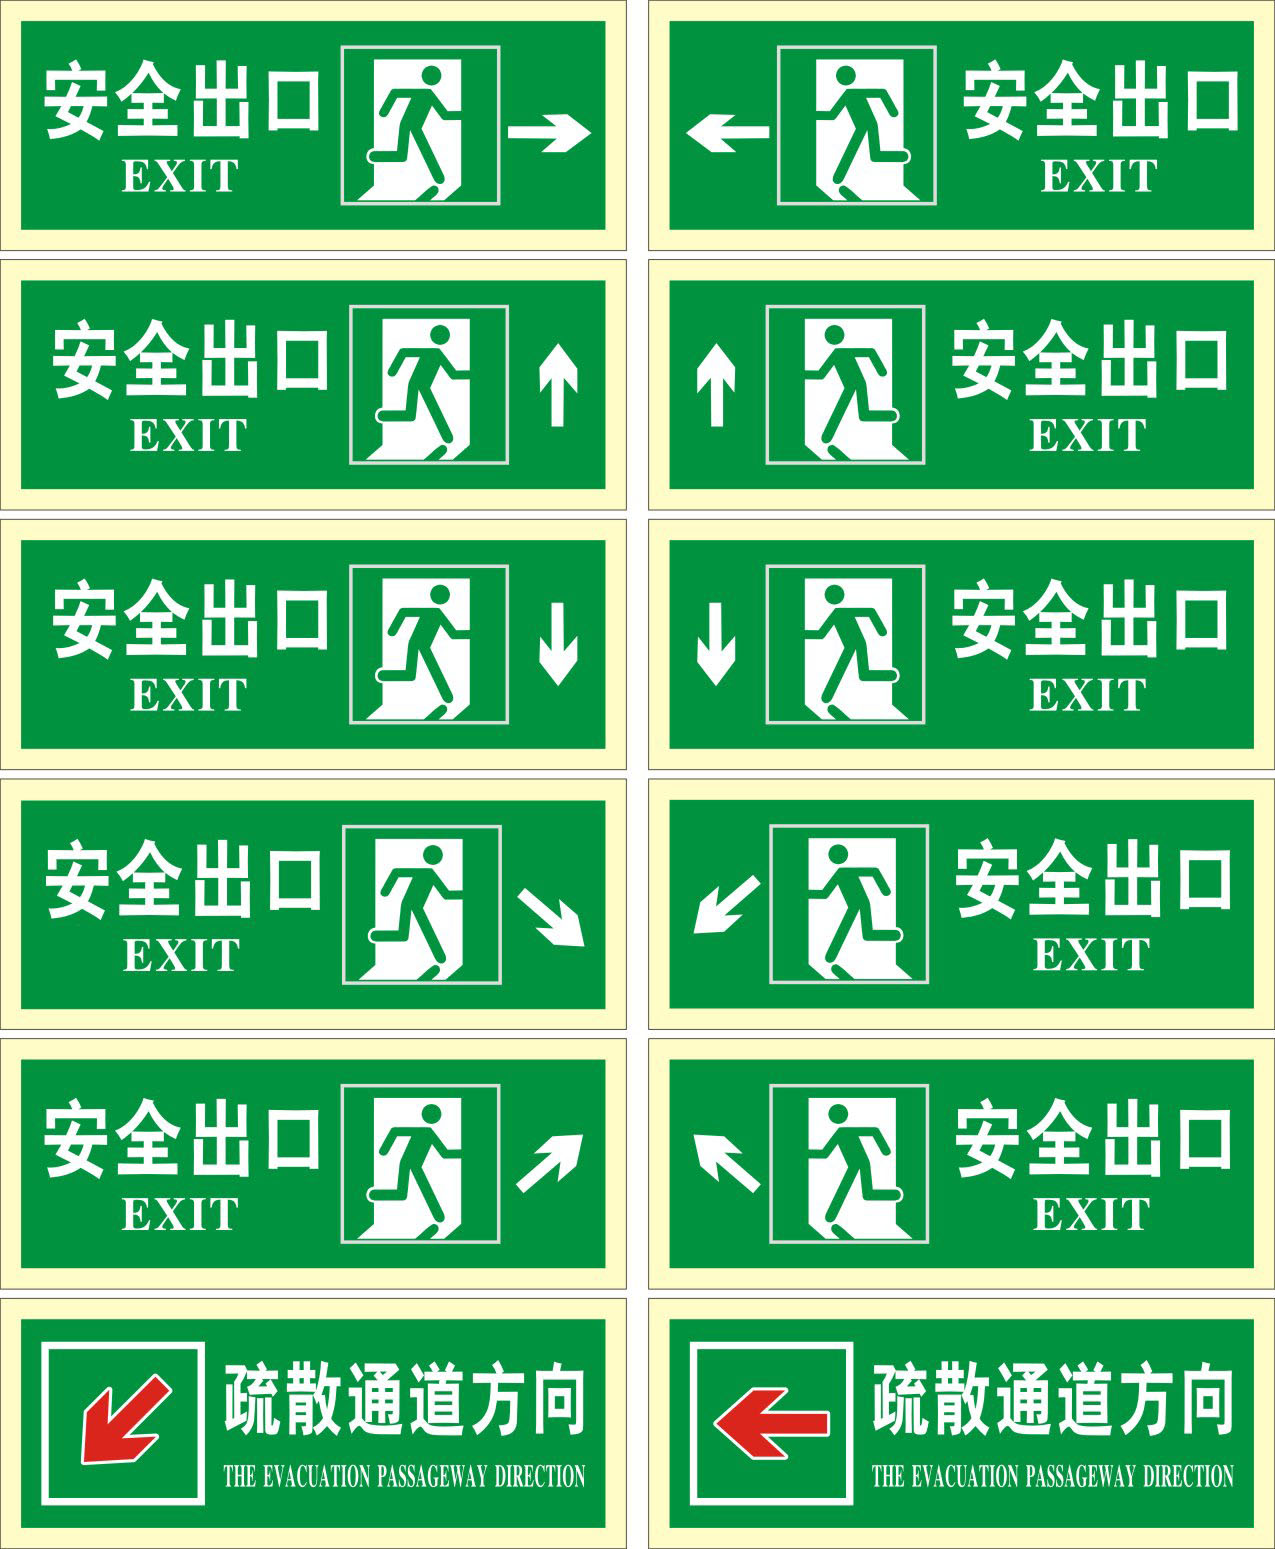 733 posters printed photo printing 961 1 fire safety signage safety exit evacuation routes direction